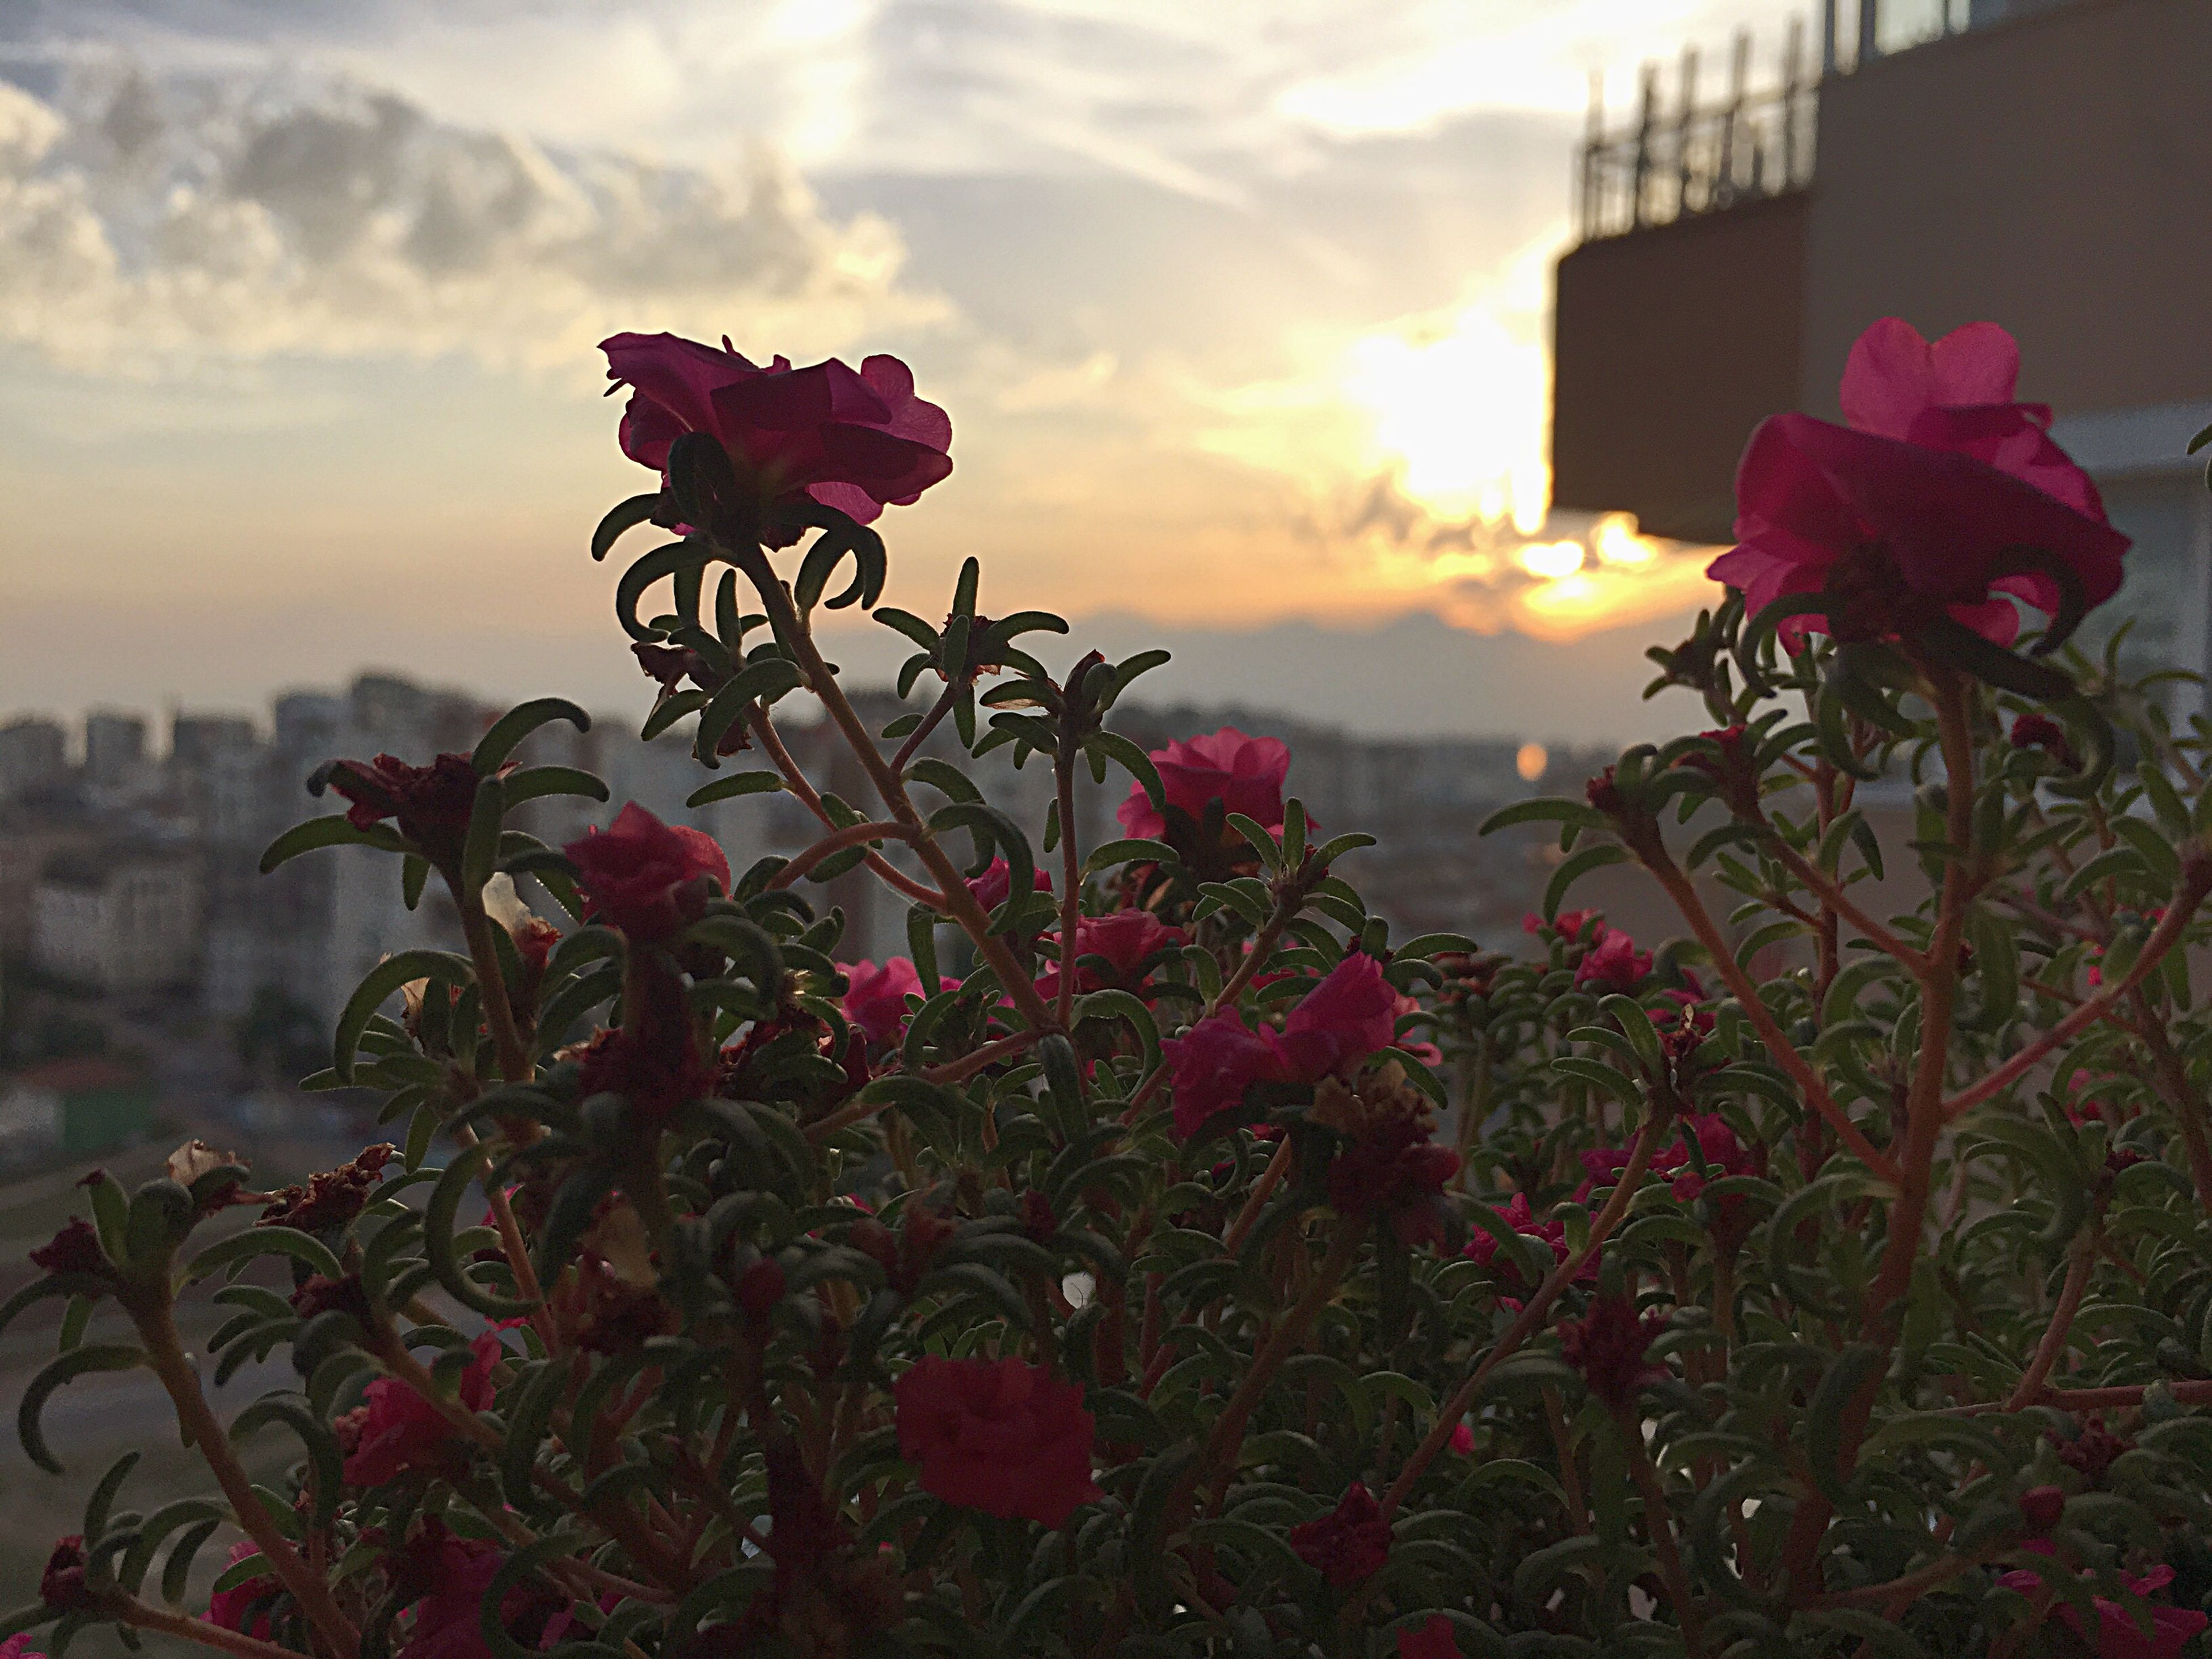 flower, growth, freshness, fragility, plant, sky, beauty in nature, petal, nature, sunset, blooming, flower head, building exterior, cloud - sky, focus on foreground, built structure, pink color, stem, field, architecture